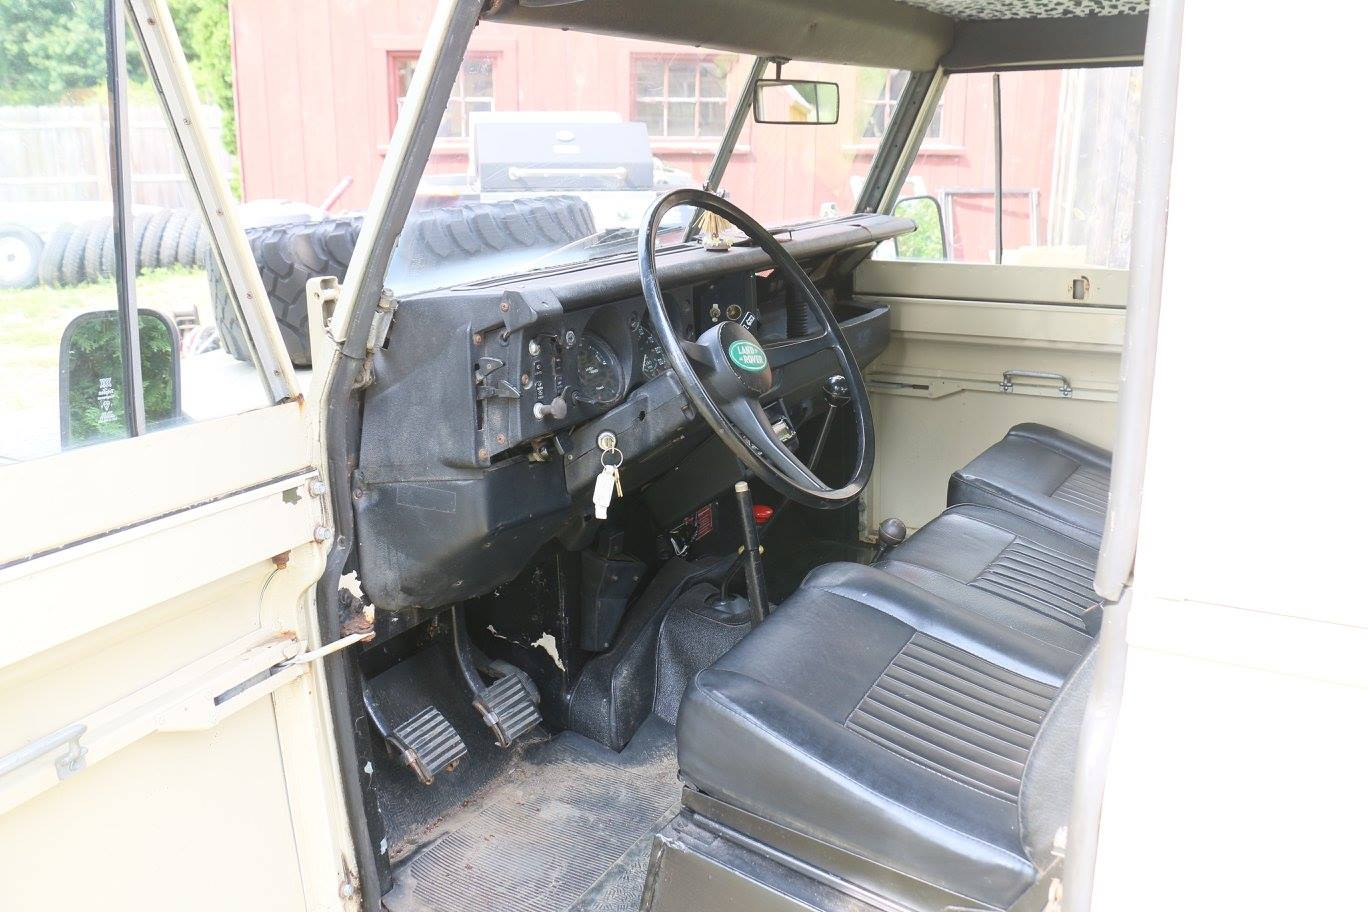 The Land Rover Series III interior was in poor shape. The upper and lower dash was full of cracks.